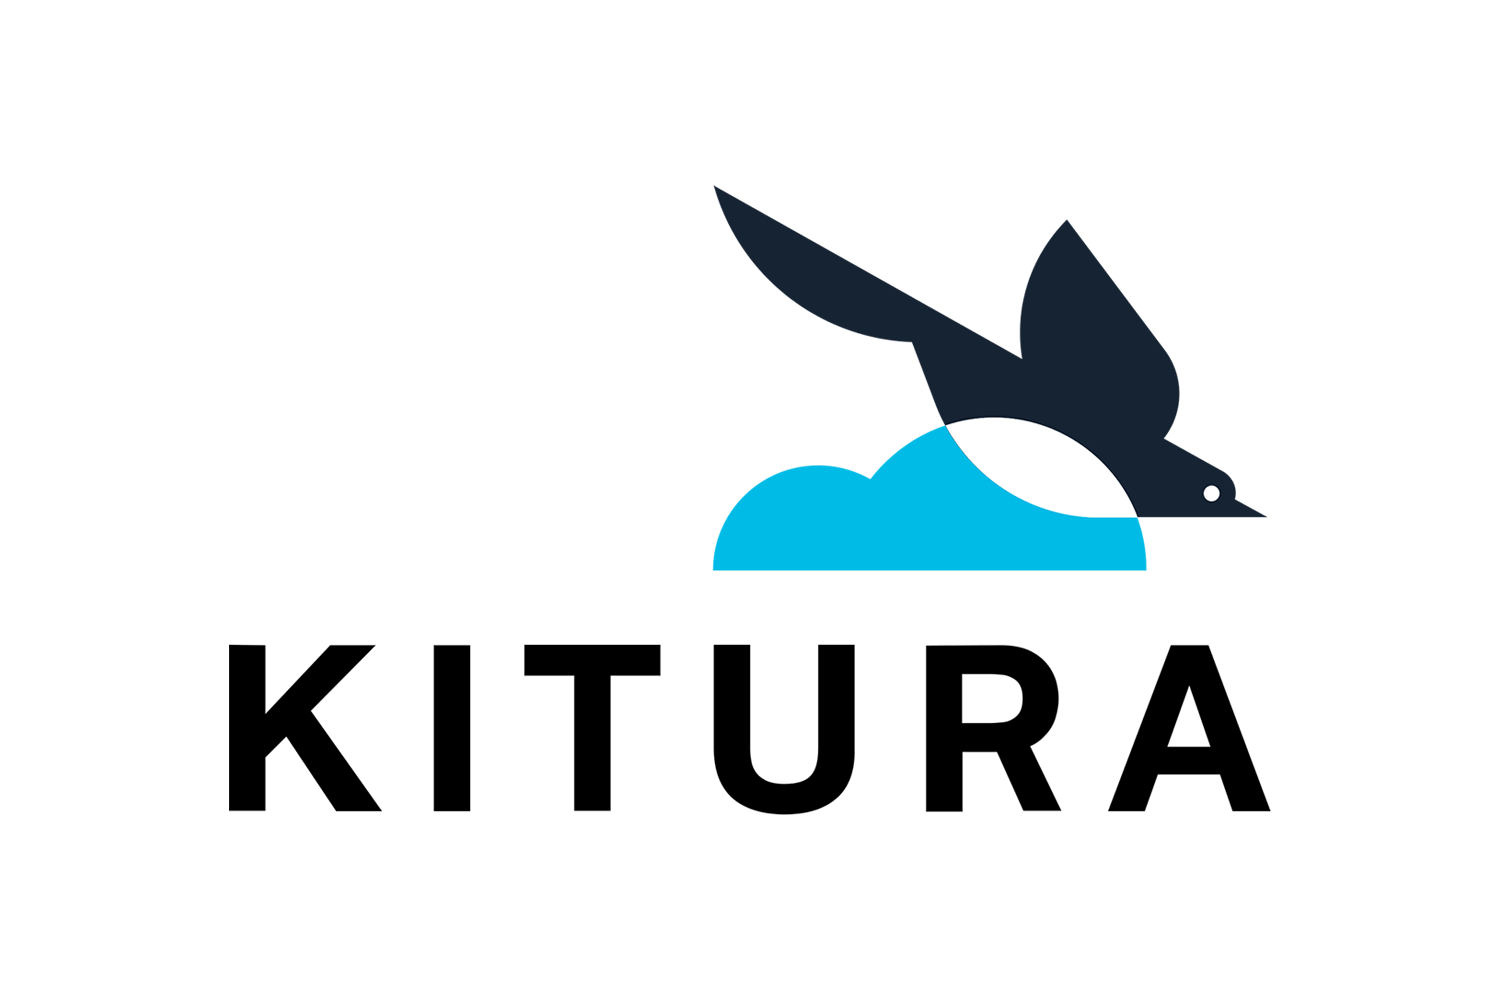 Kitura 2.0 released, adds codable routing